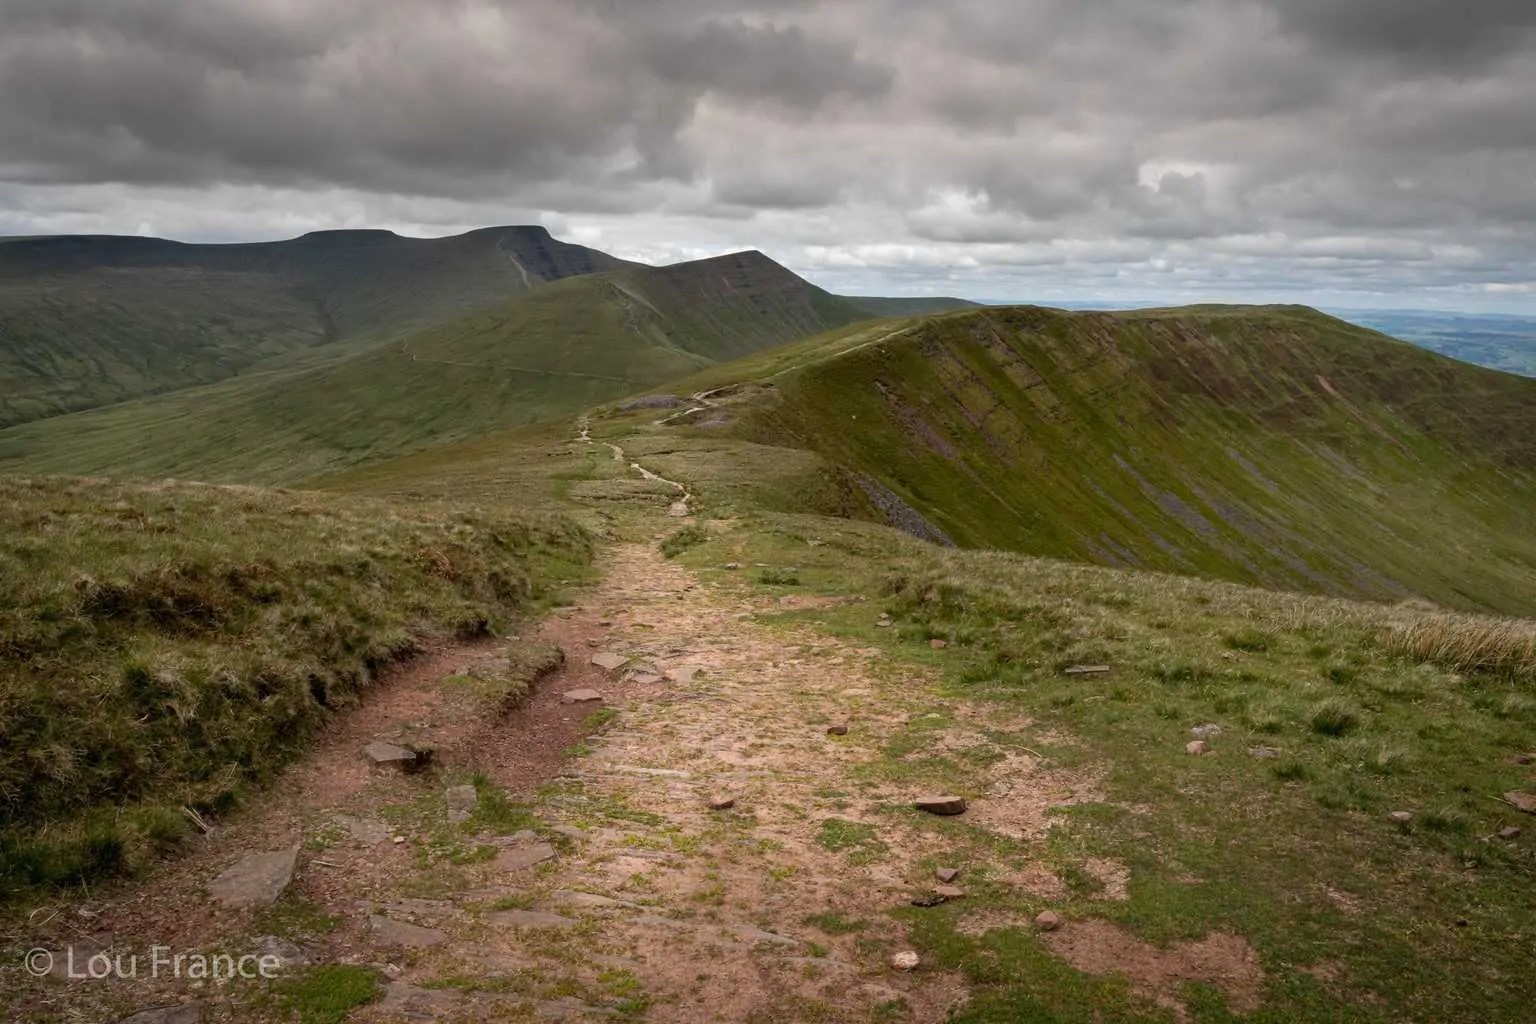 The Best Brecon Beacons Walks – 9 Paths With Epic Views